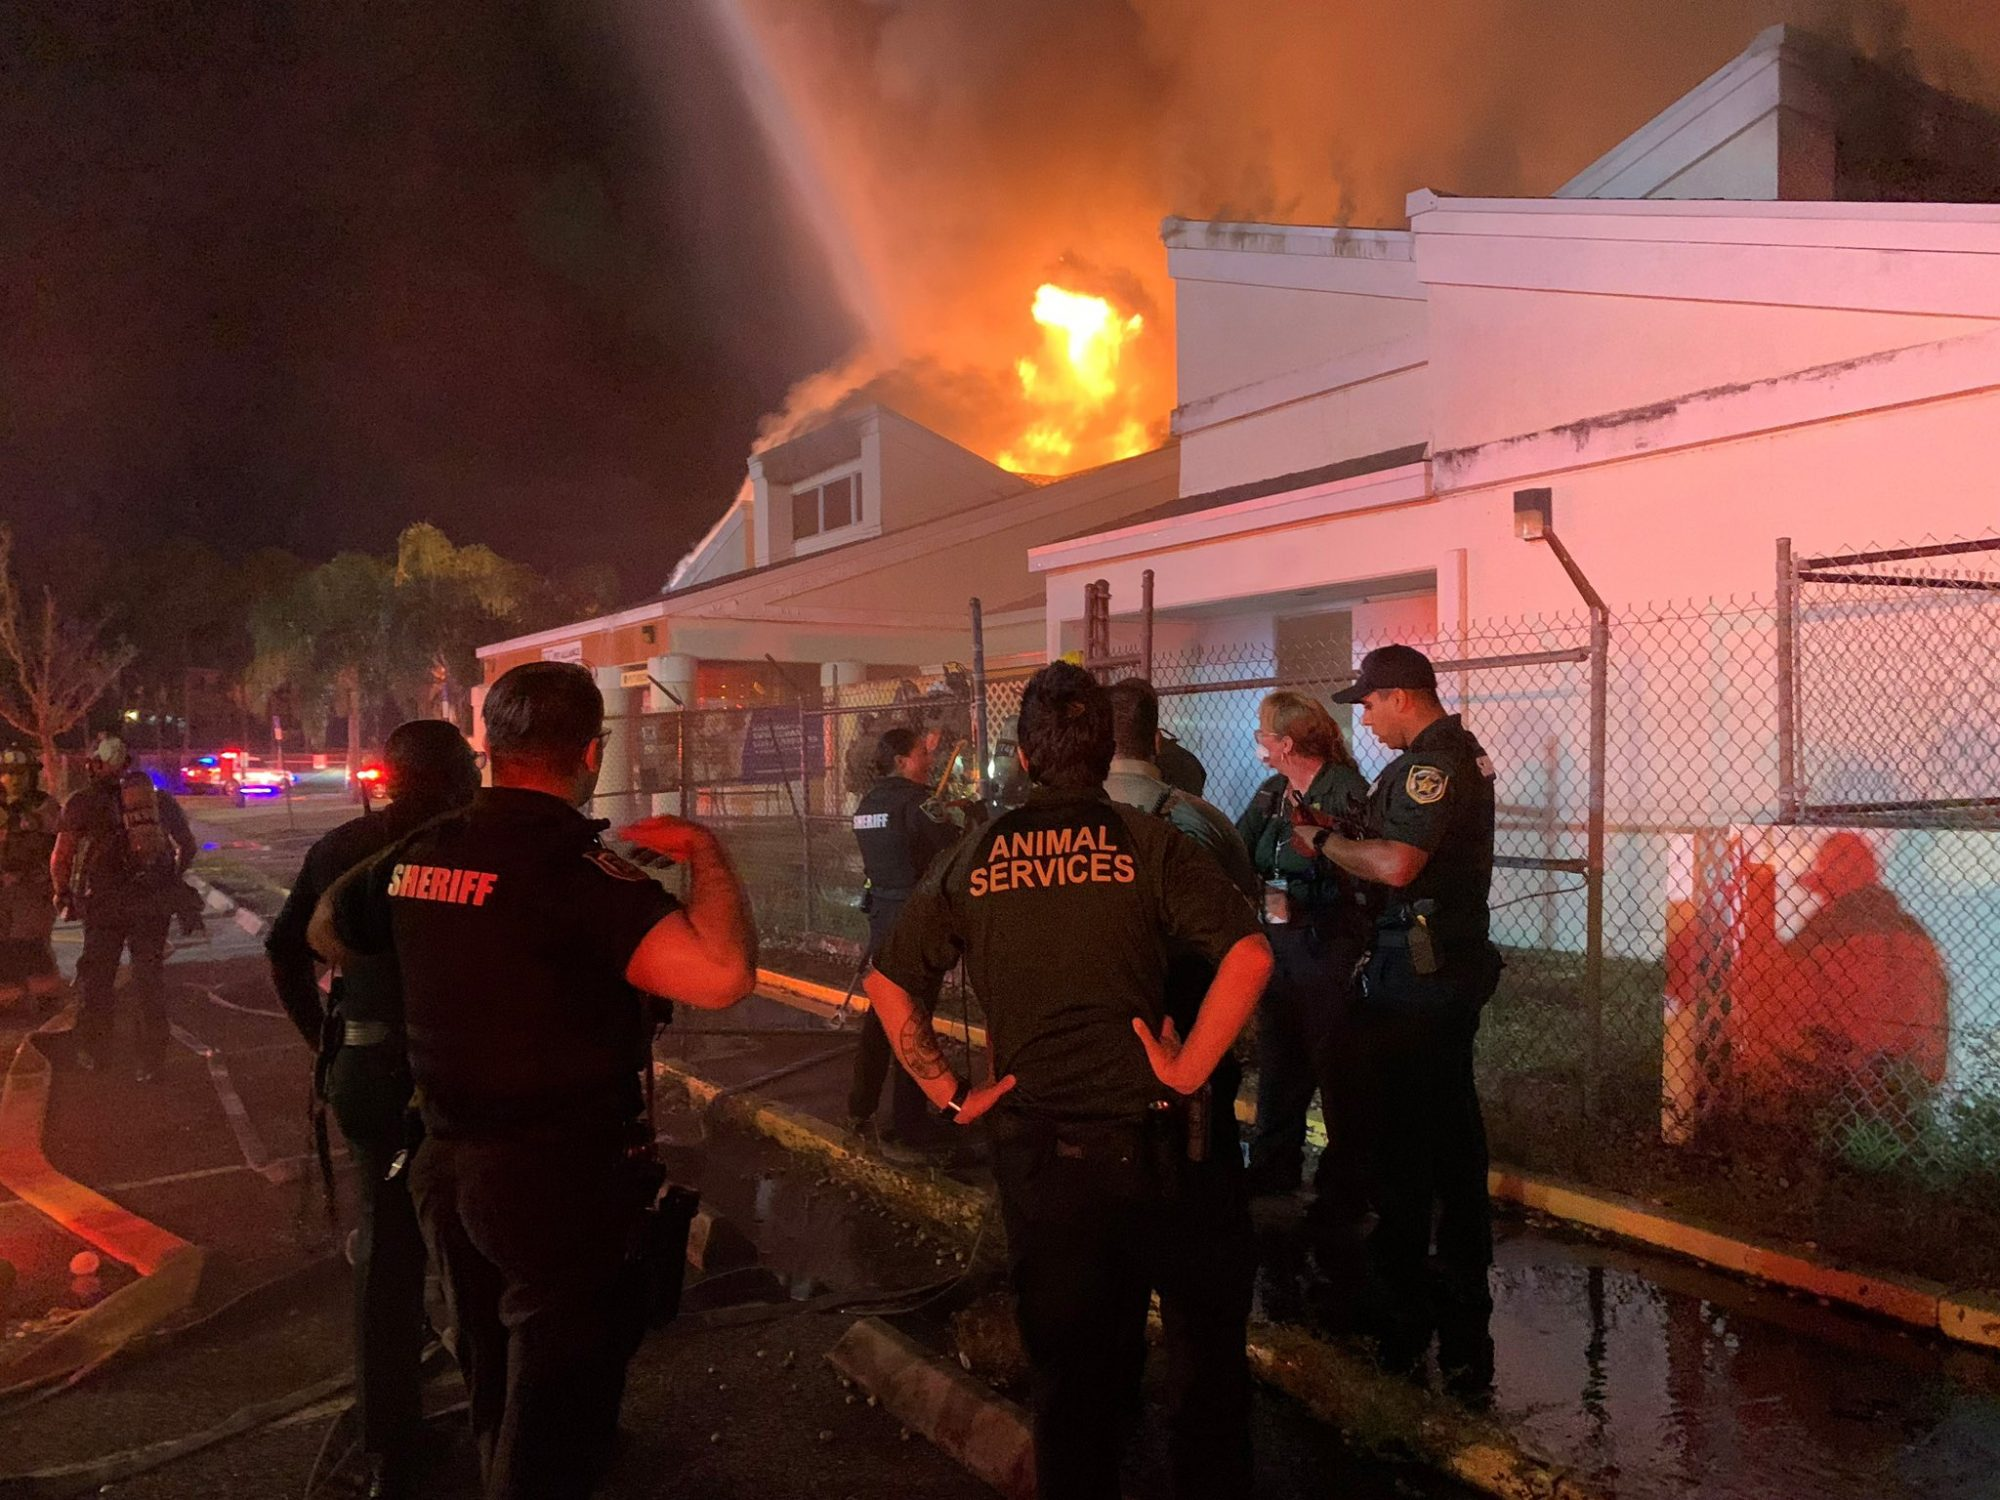 17 Cats Killed, 26 Dogs Saved In Fire At Fla. Animal Rescue